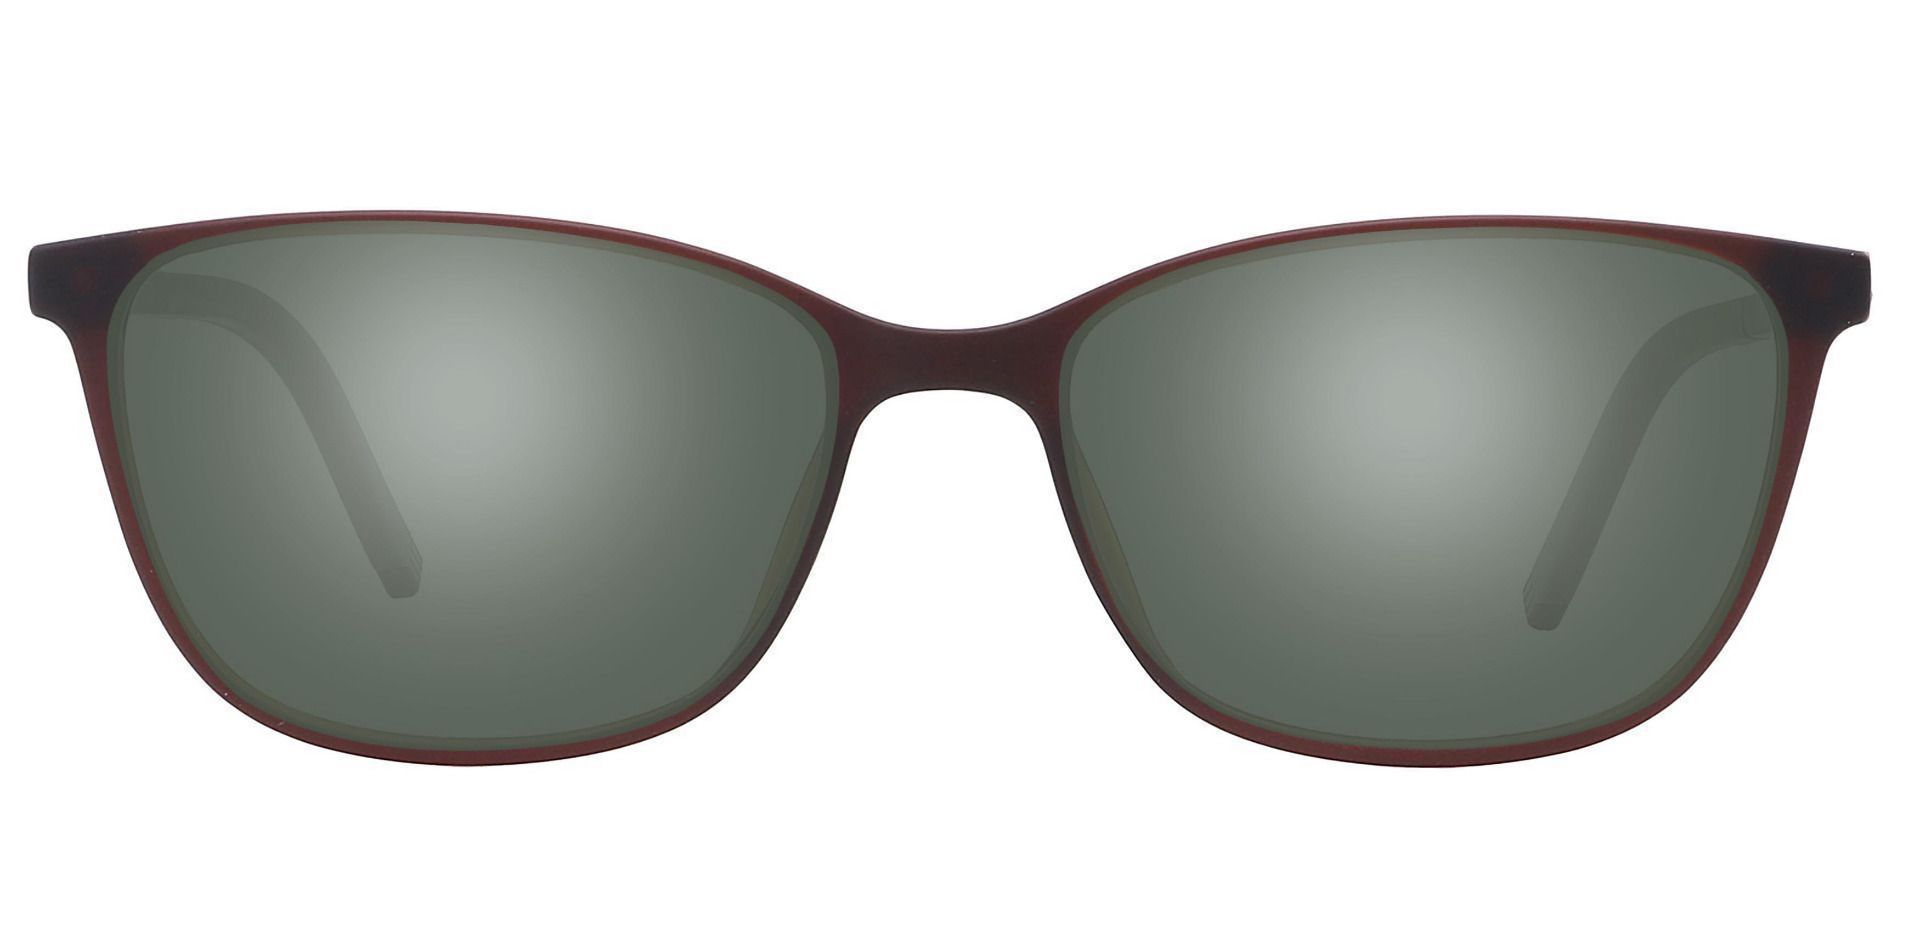 Danica Square Prescription Sunglasses - Brown Frame With Green Lenses